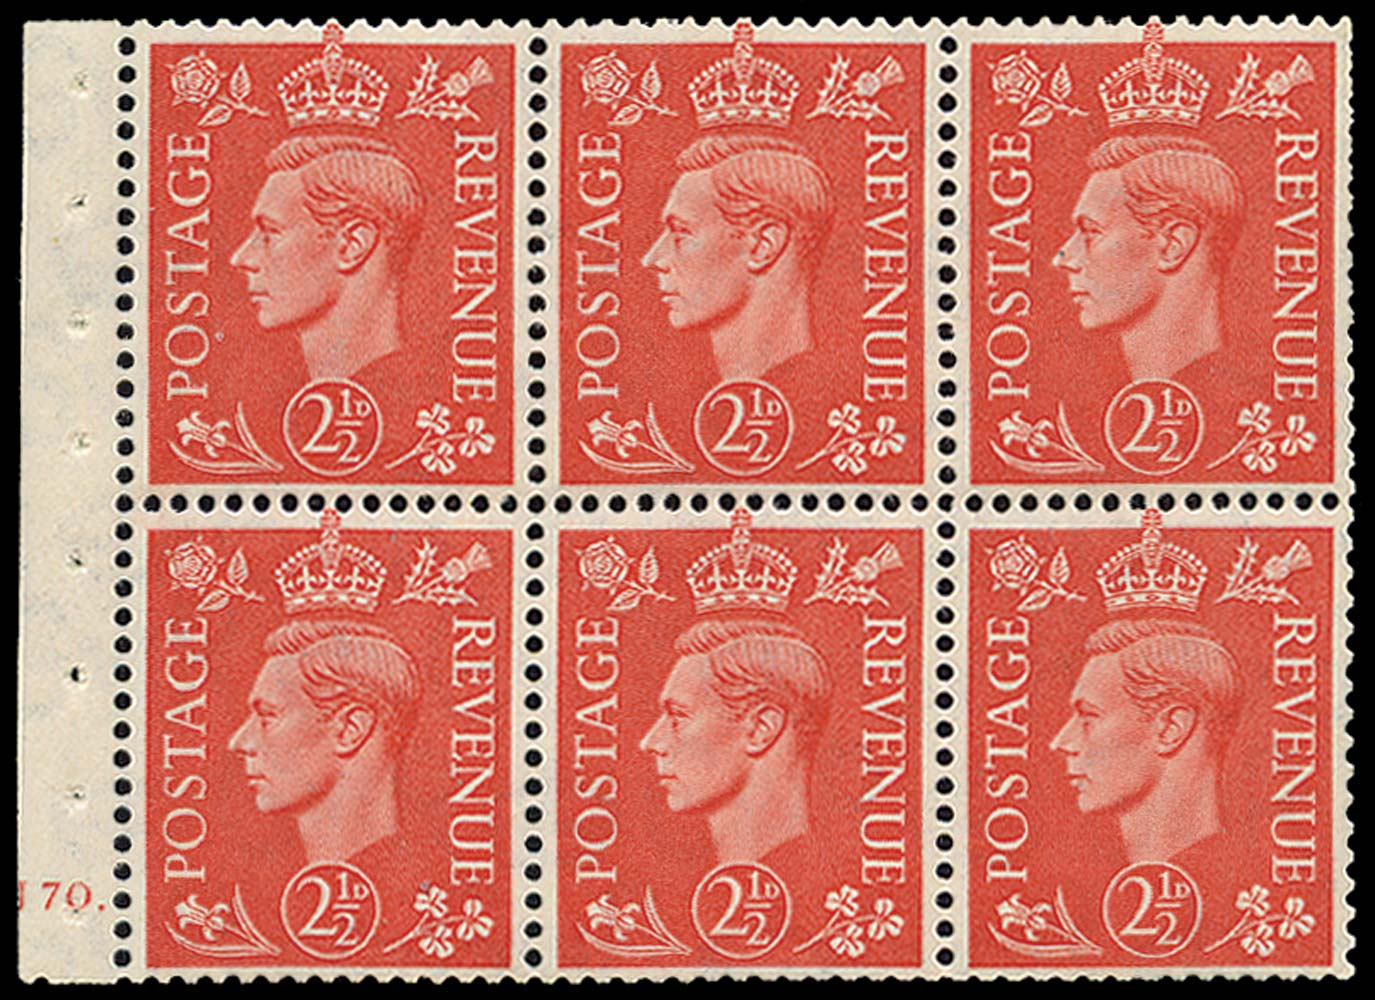 GB 1951  SG507c Booklet pane - Cylinder J70. (dot)